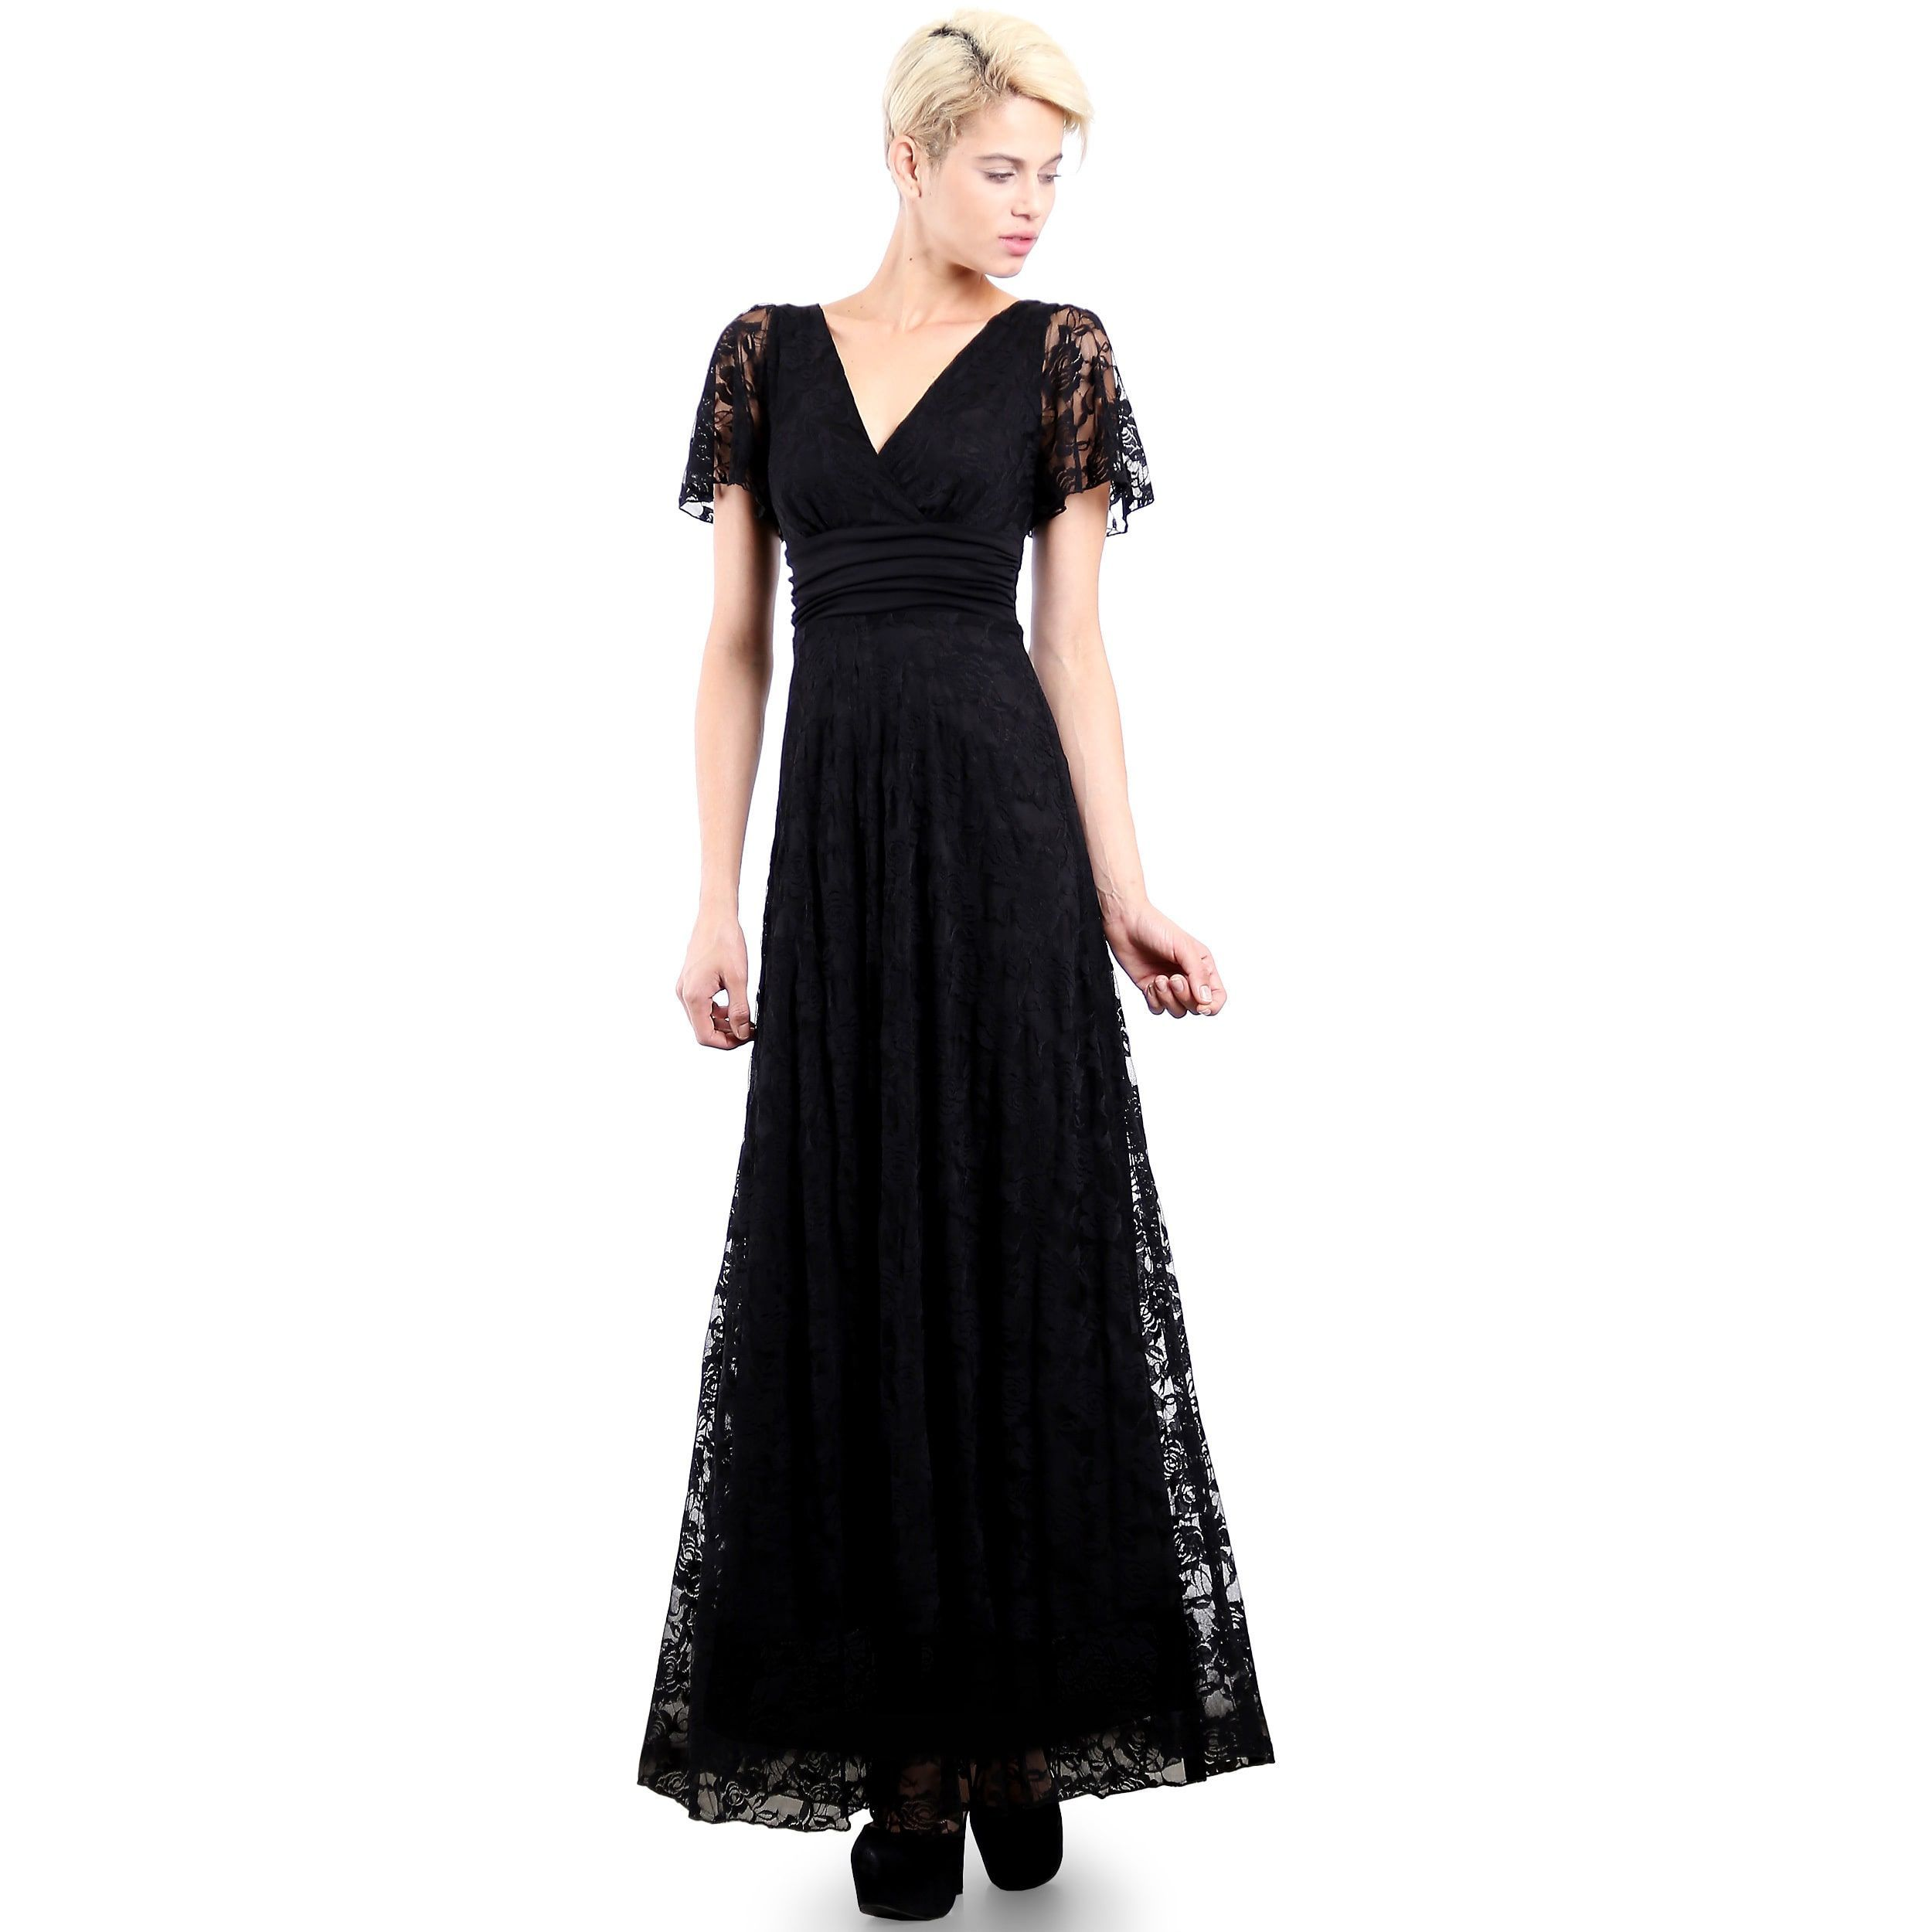 Evanese womenus elegant lace evening party formal long dress gown